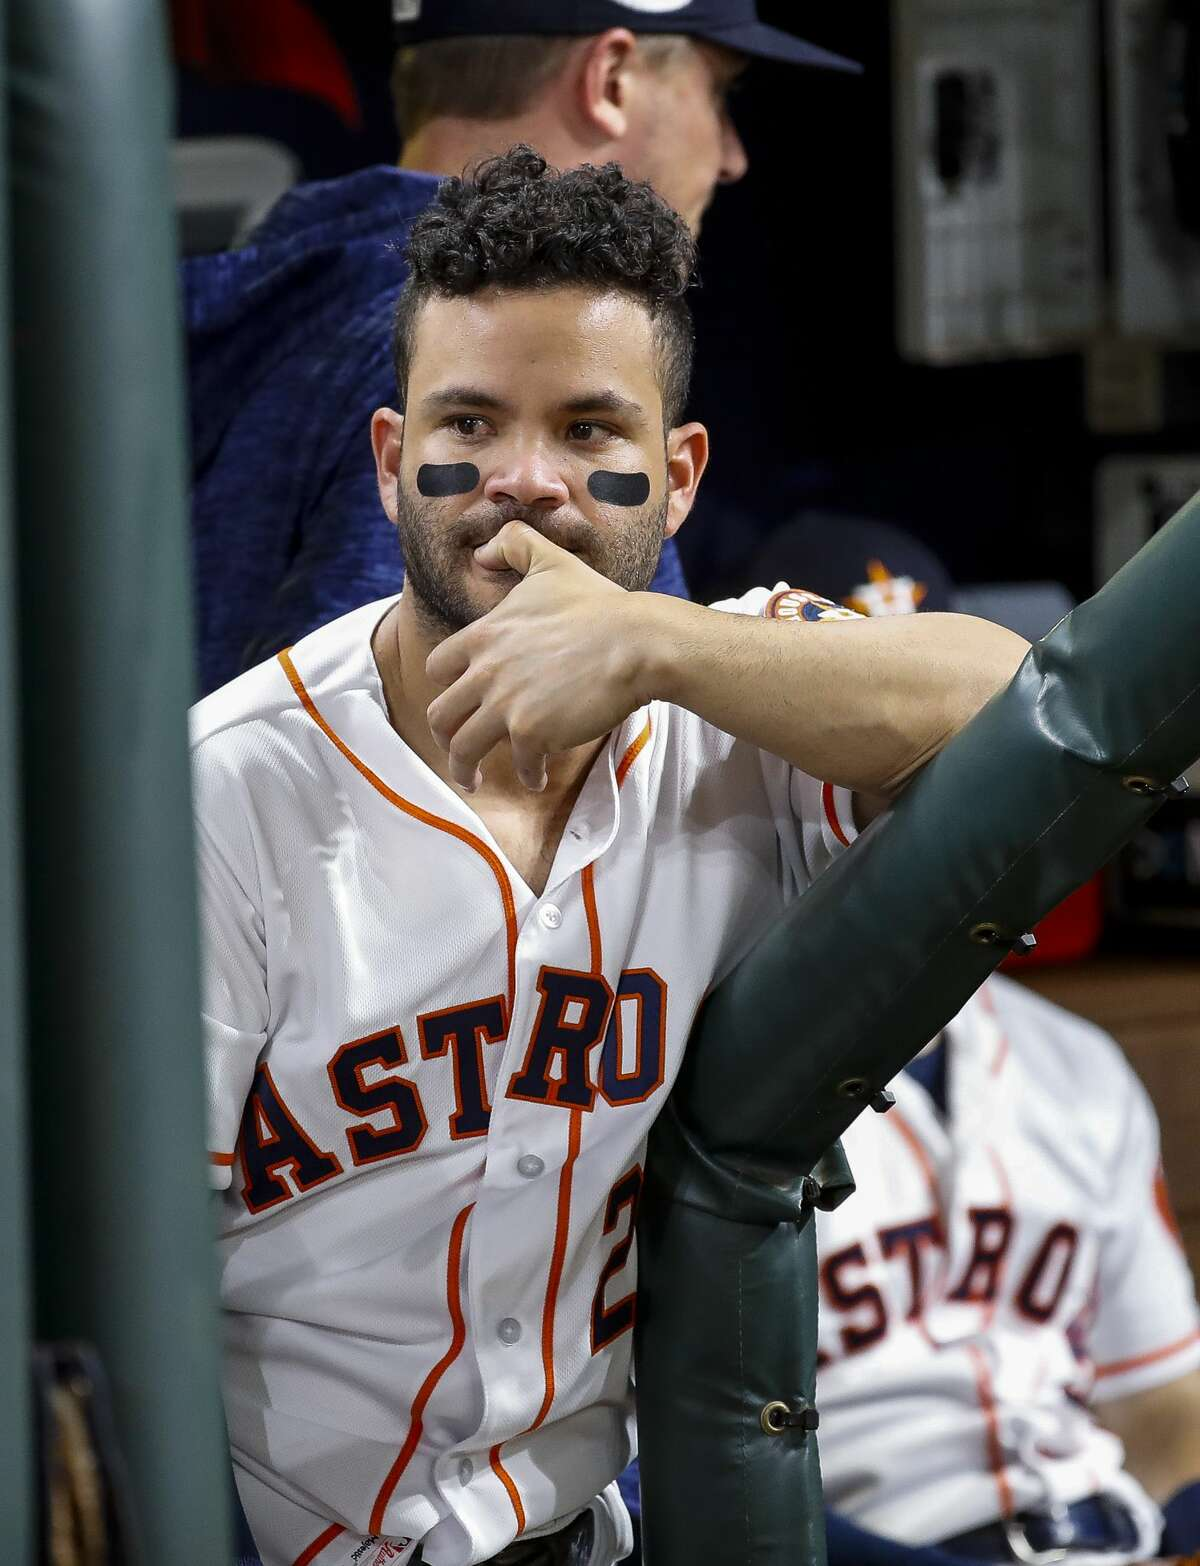 Houston Astros designated hitter Jose Altuve (27) reacts from the dugout at the end of Game 5 of the American League Championship Series at Minute Maid Park on Thursday, Oct. 18, 2018, in Houston.